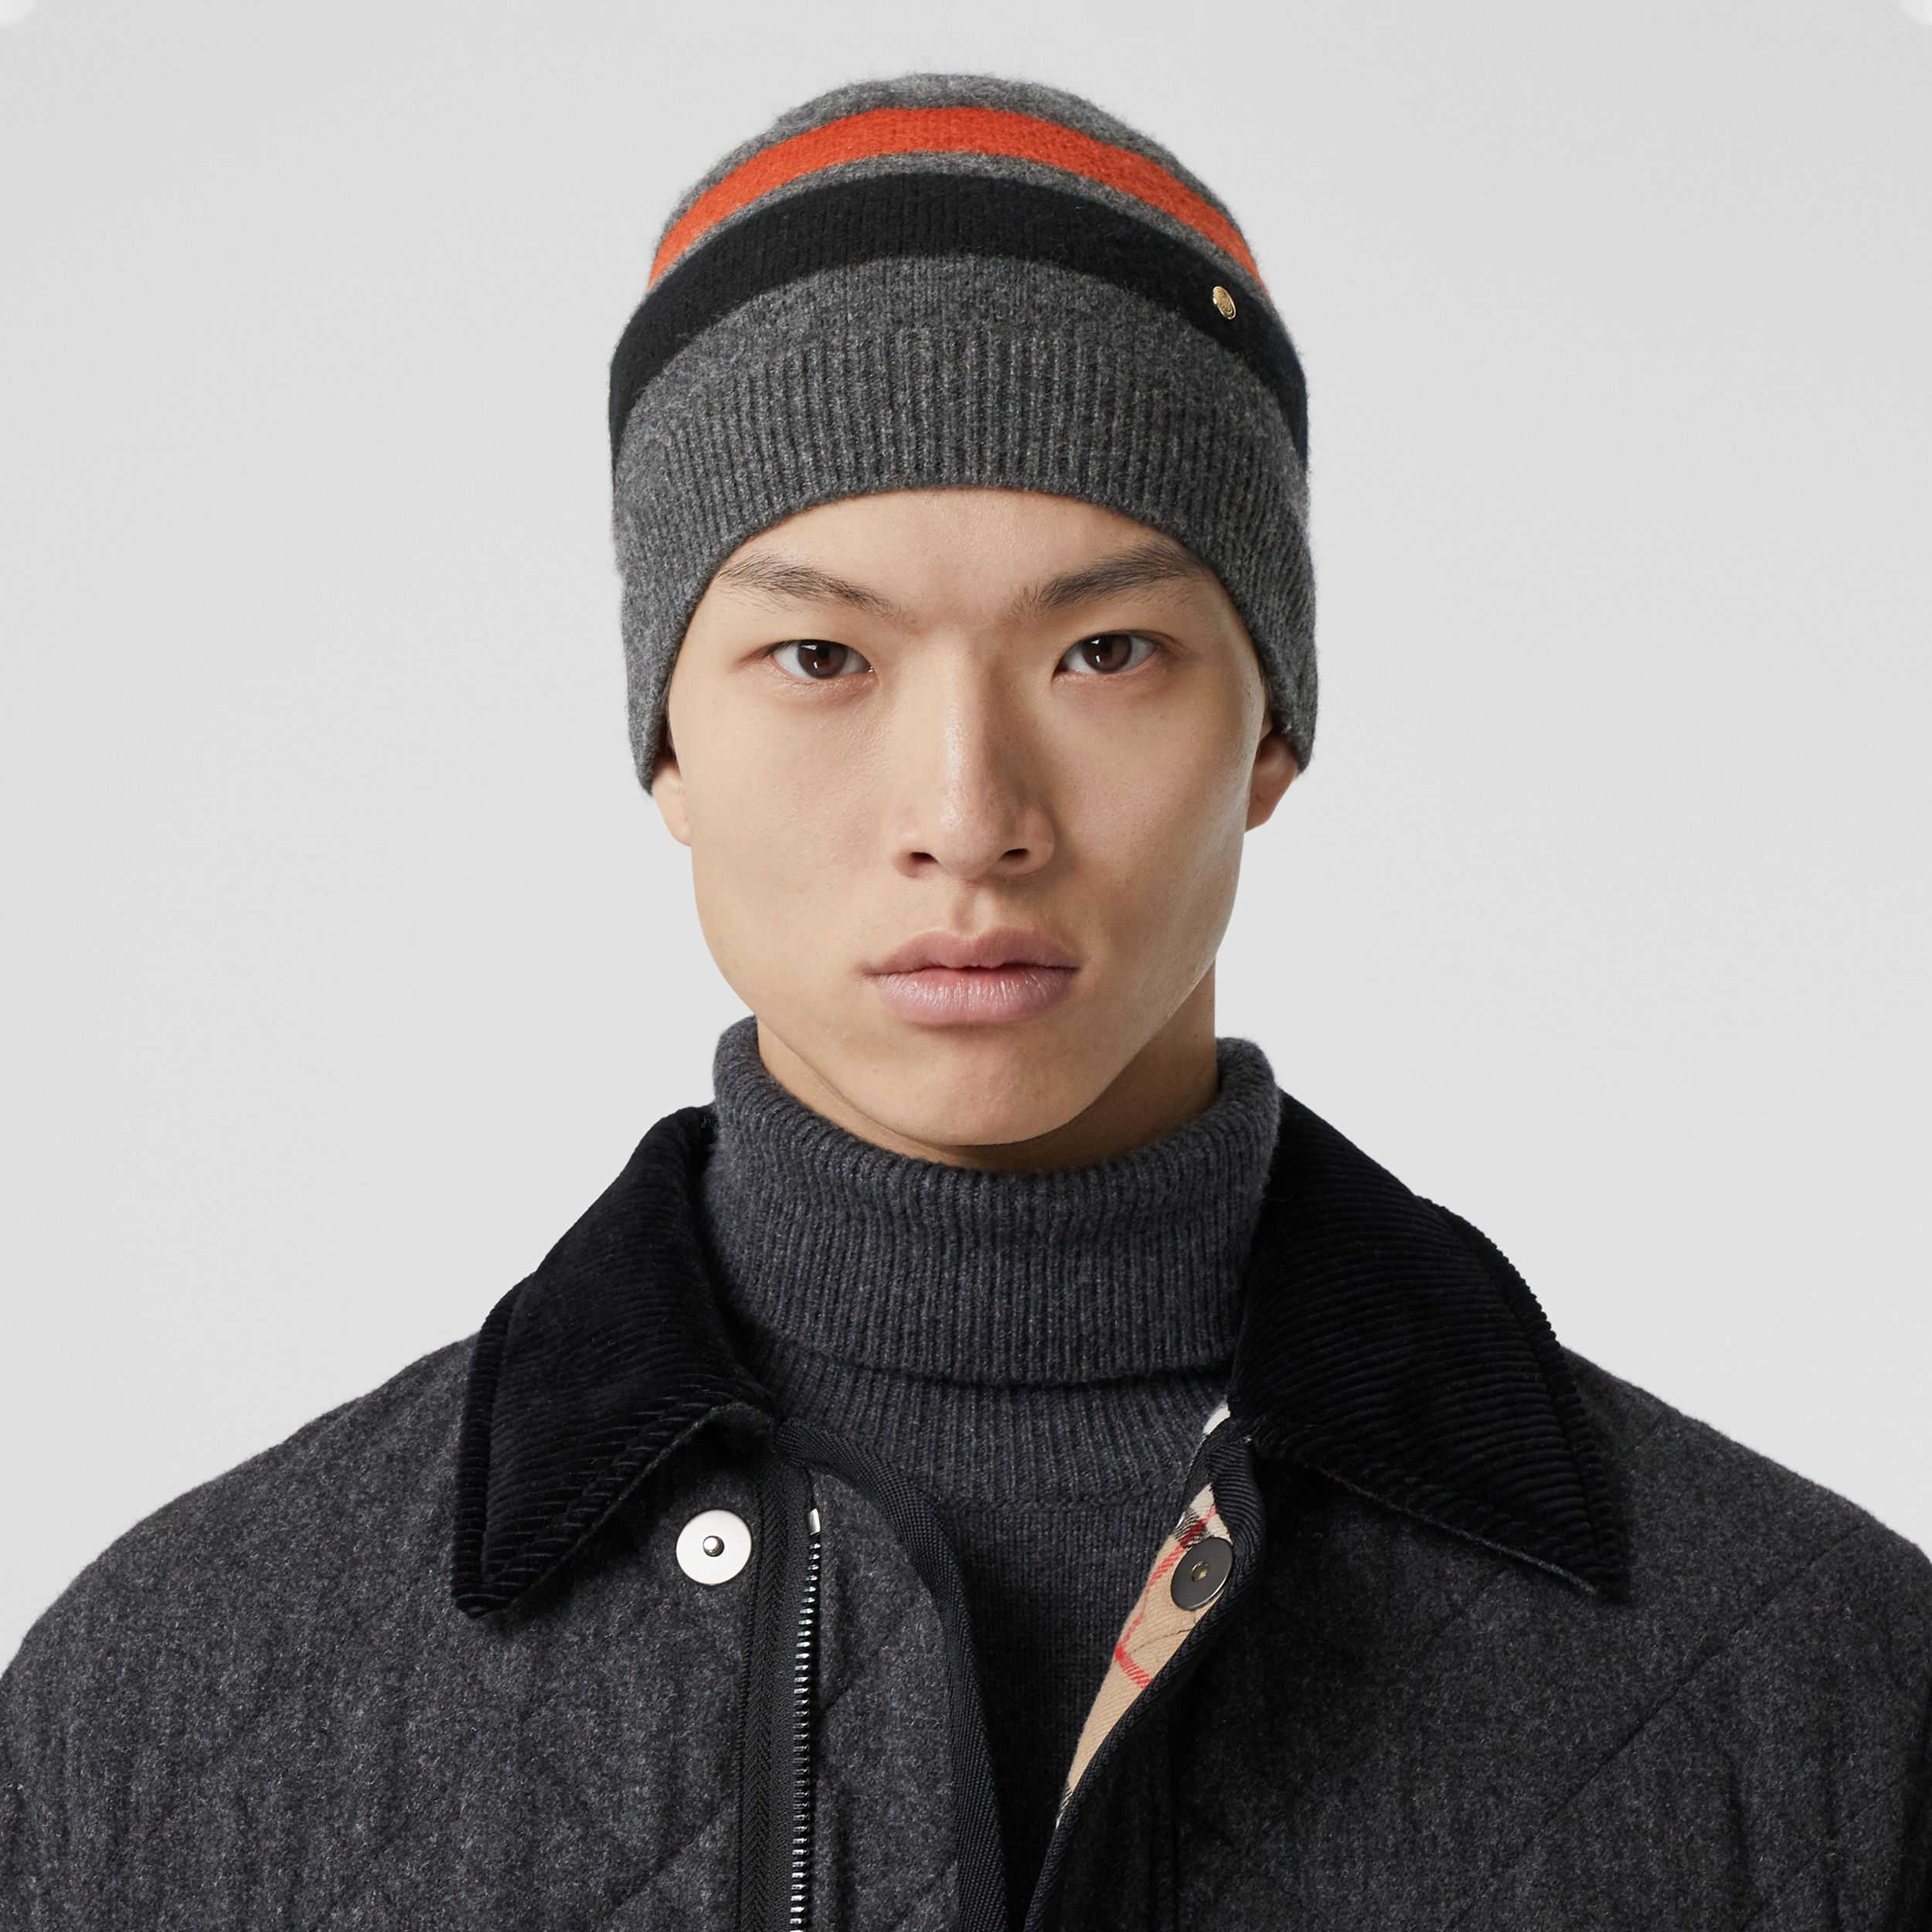 Monogram Motif Merino Wool Cashmere Beanie in Dark Grey | Burberry - 4